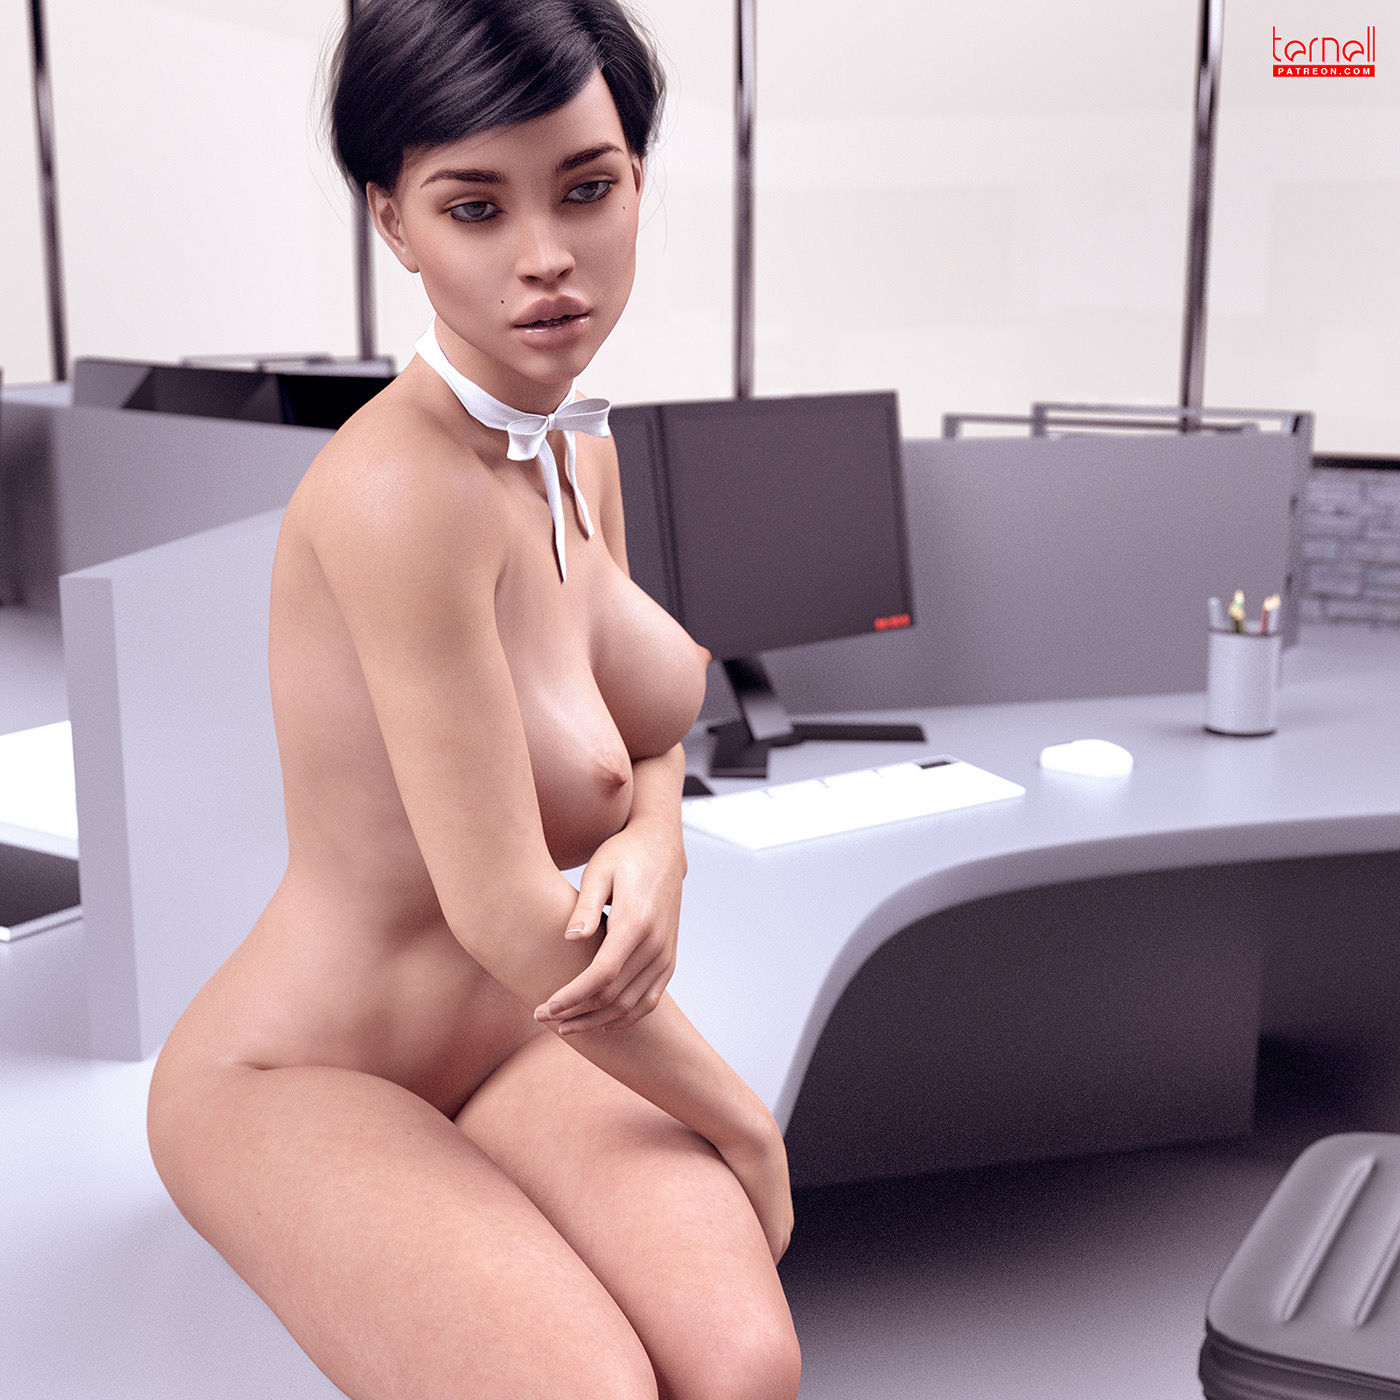 Alone in the office / фотограф Andrew TERNELL